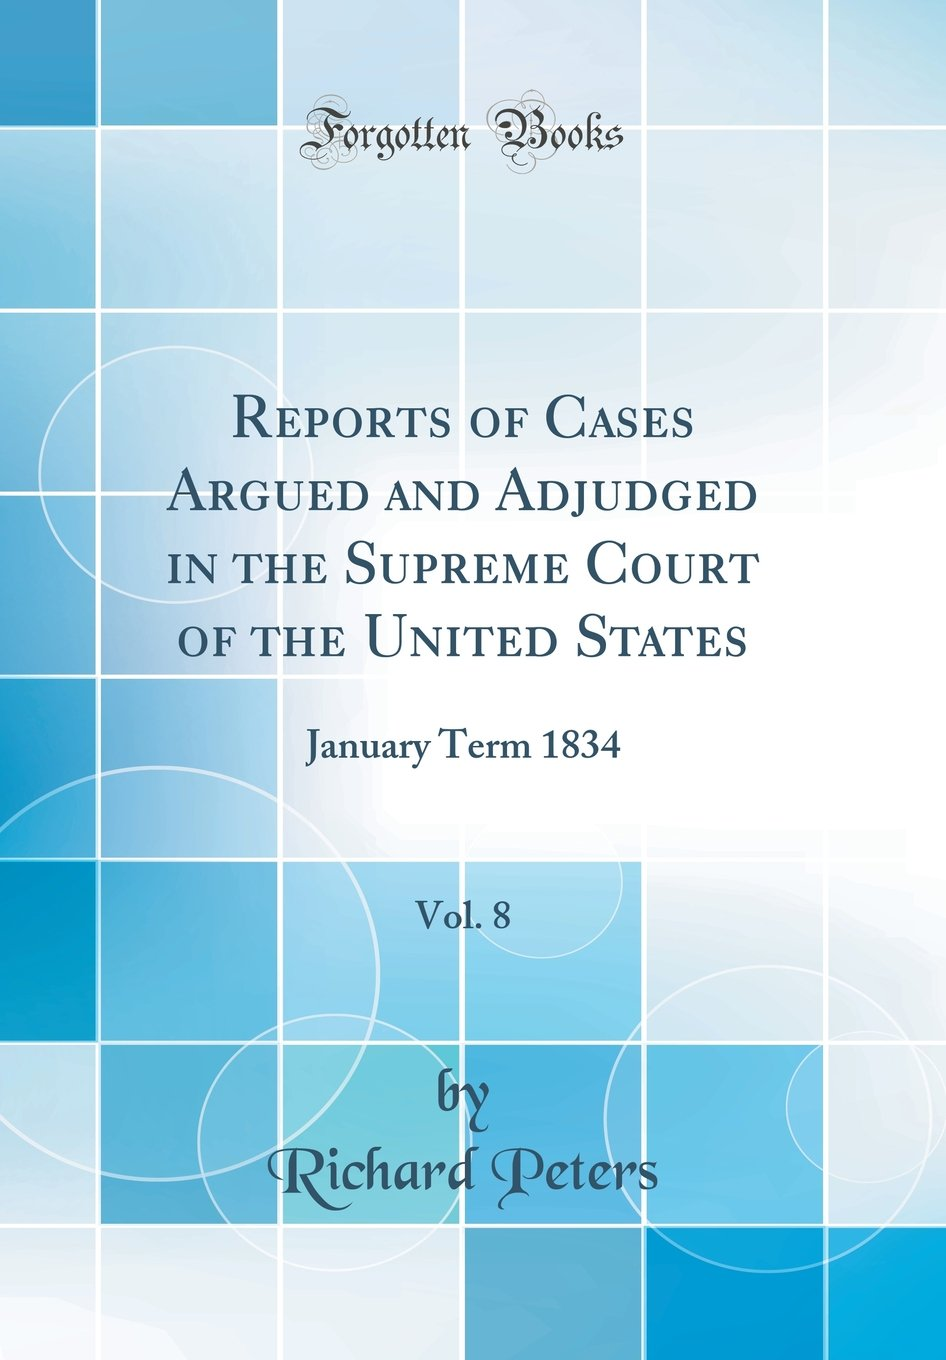 Read Online Reports of Cases Argued and Adjudged in the Supreme Court of the United States, Vol. 8: January Term 1834 (Classic Reprint) ebook